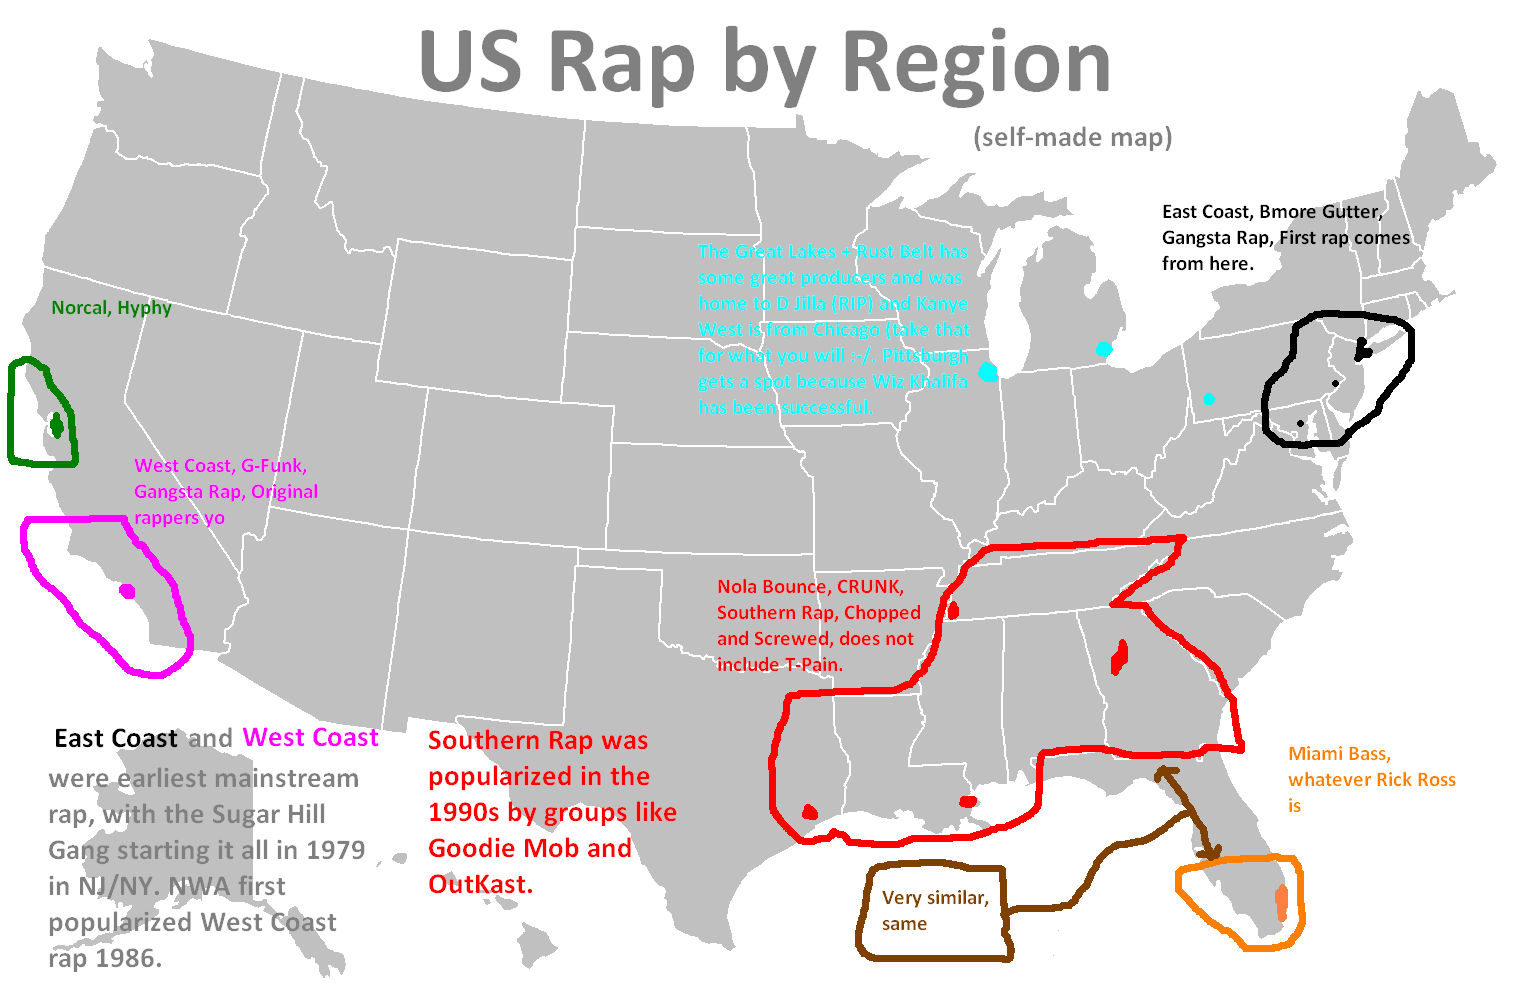 http://sperglord.files.wordpress.com/2011/06/us-rap-map1.png